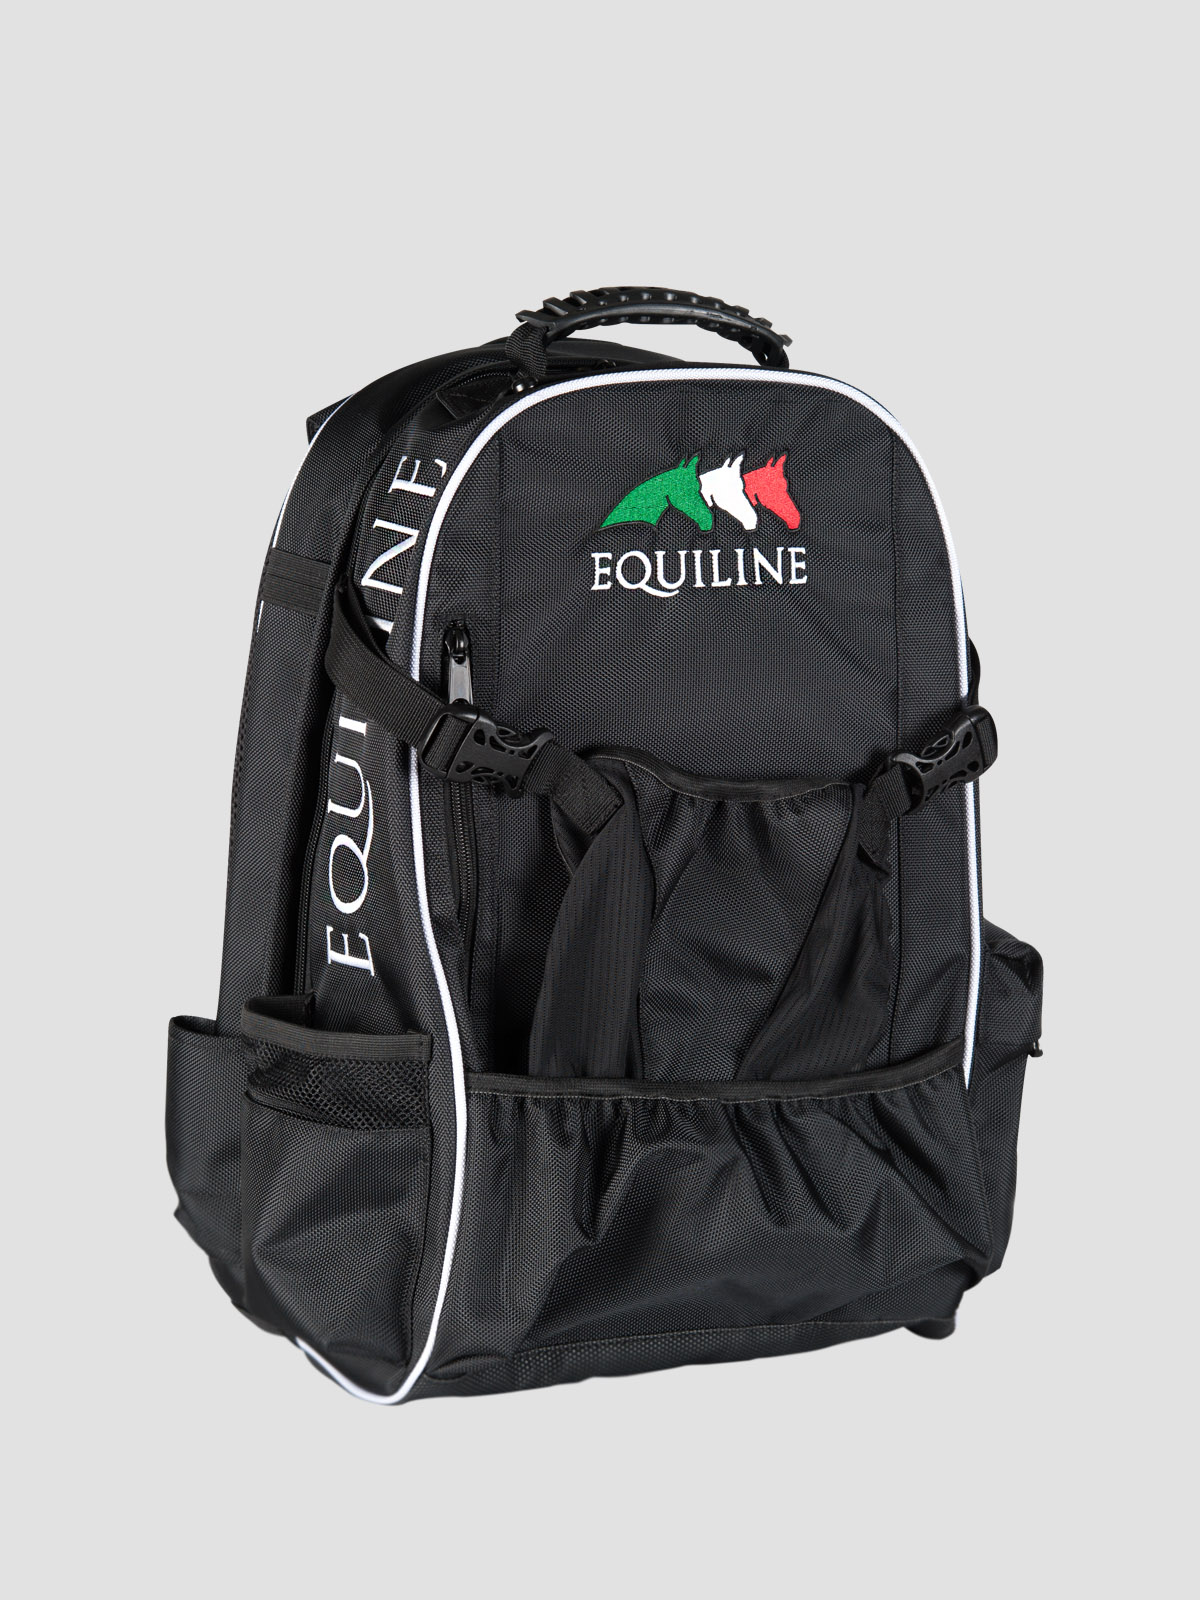 Equiline Nathan horse riding equipment backpack backpack